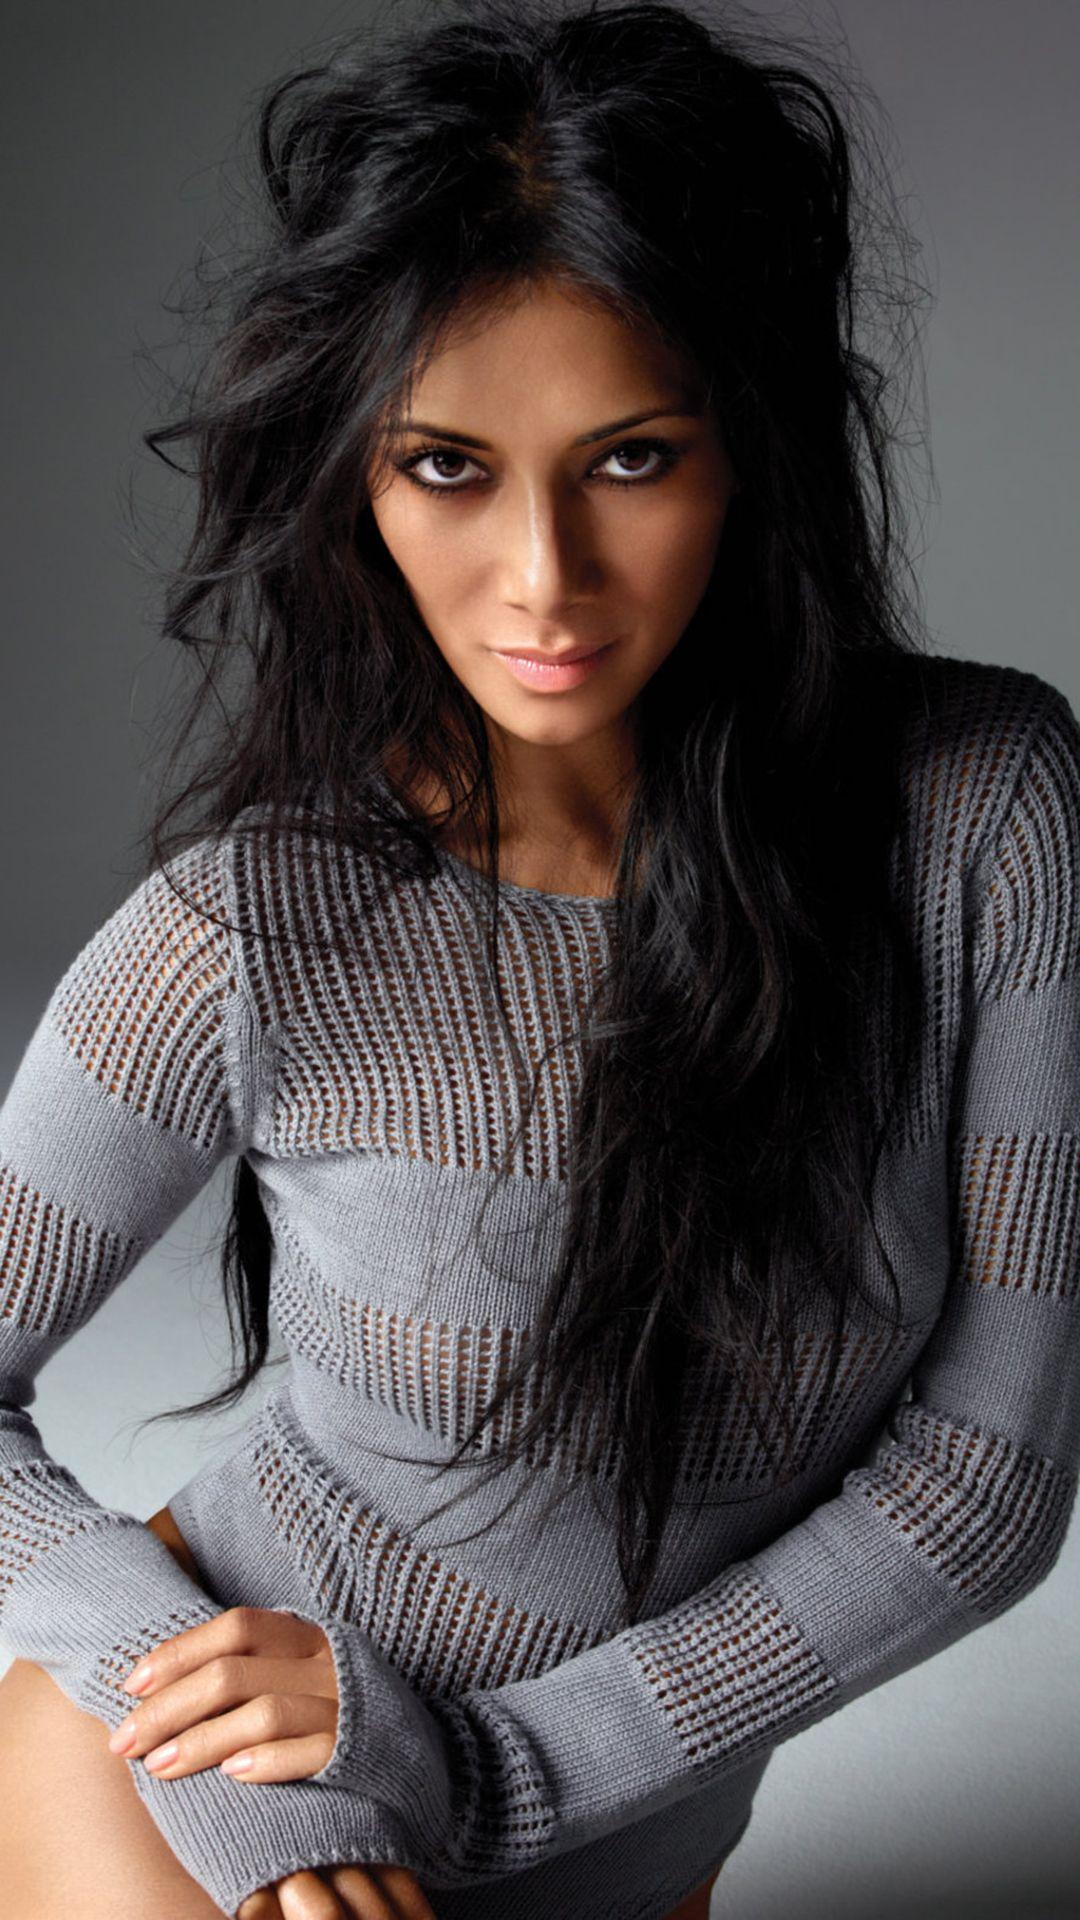 Nicole Scherzinger - Best htc one wallpapers, free and easy to download